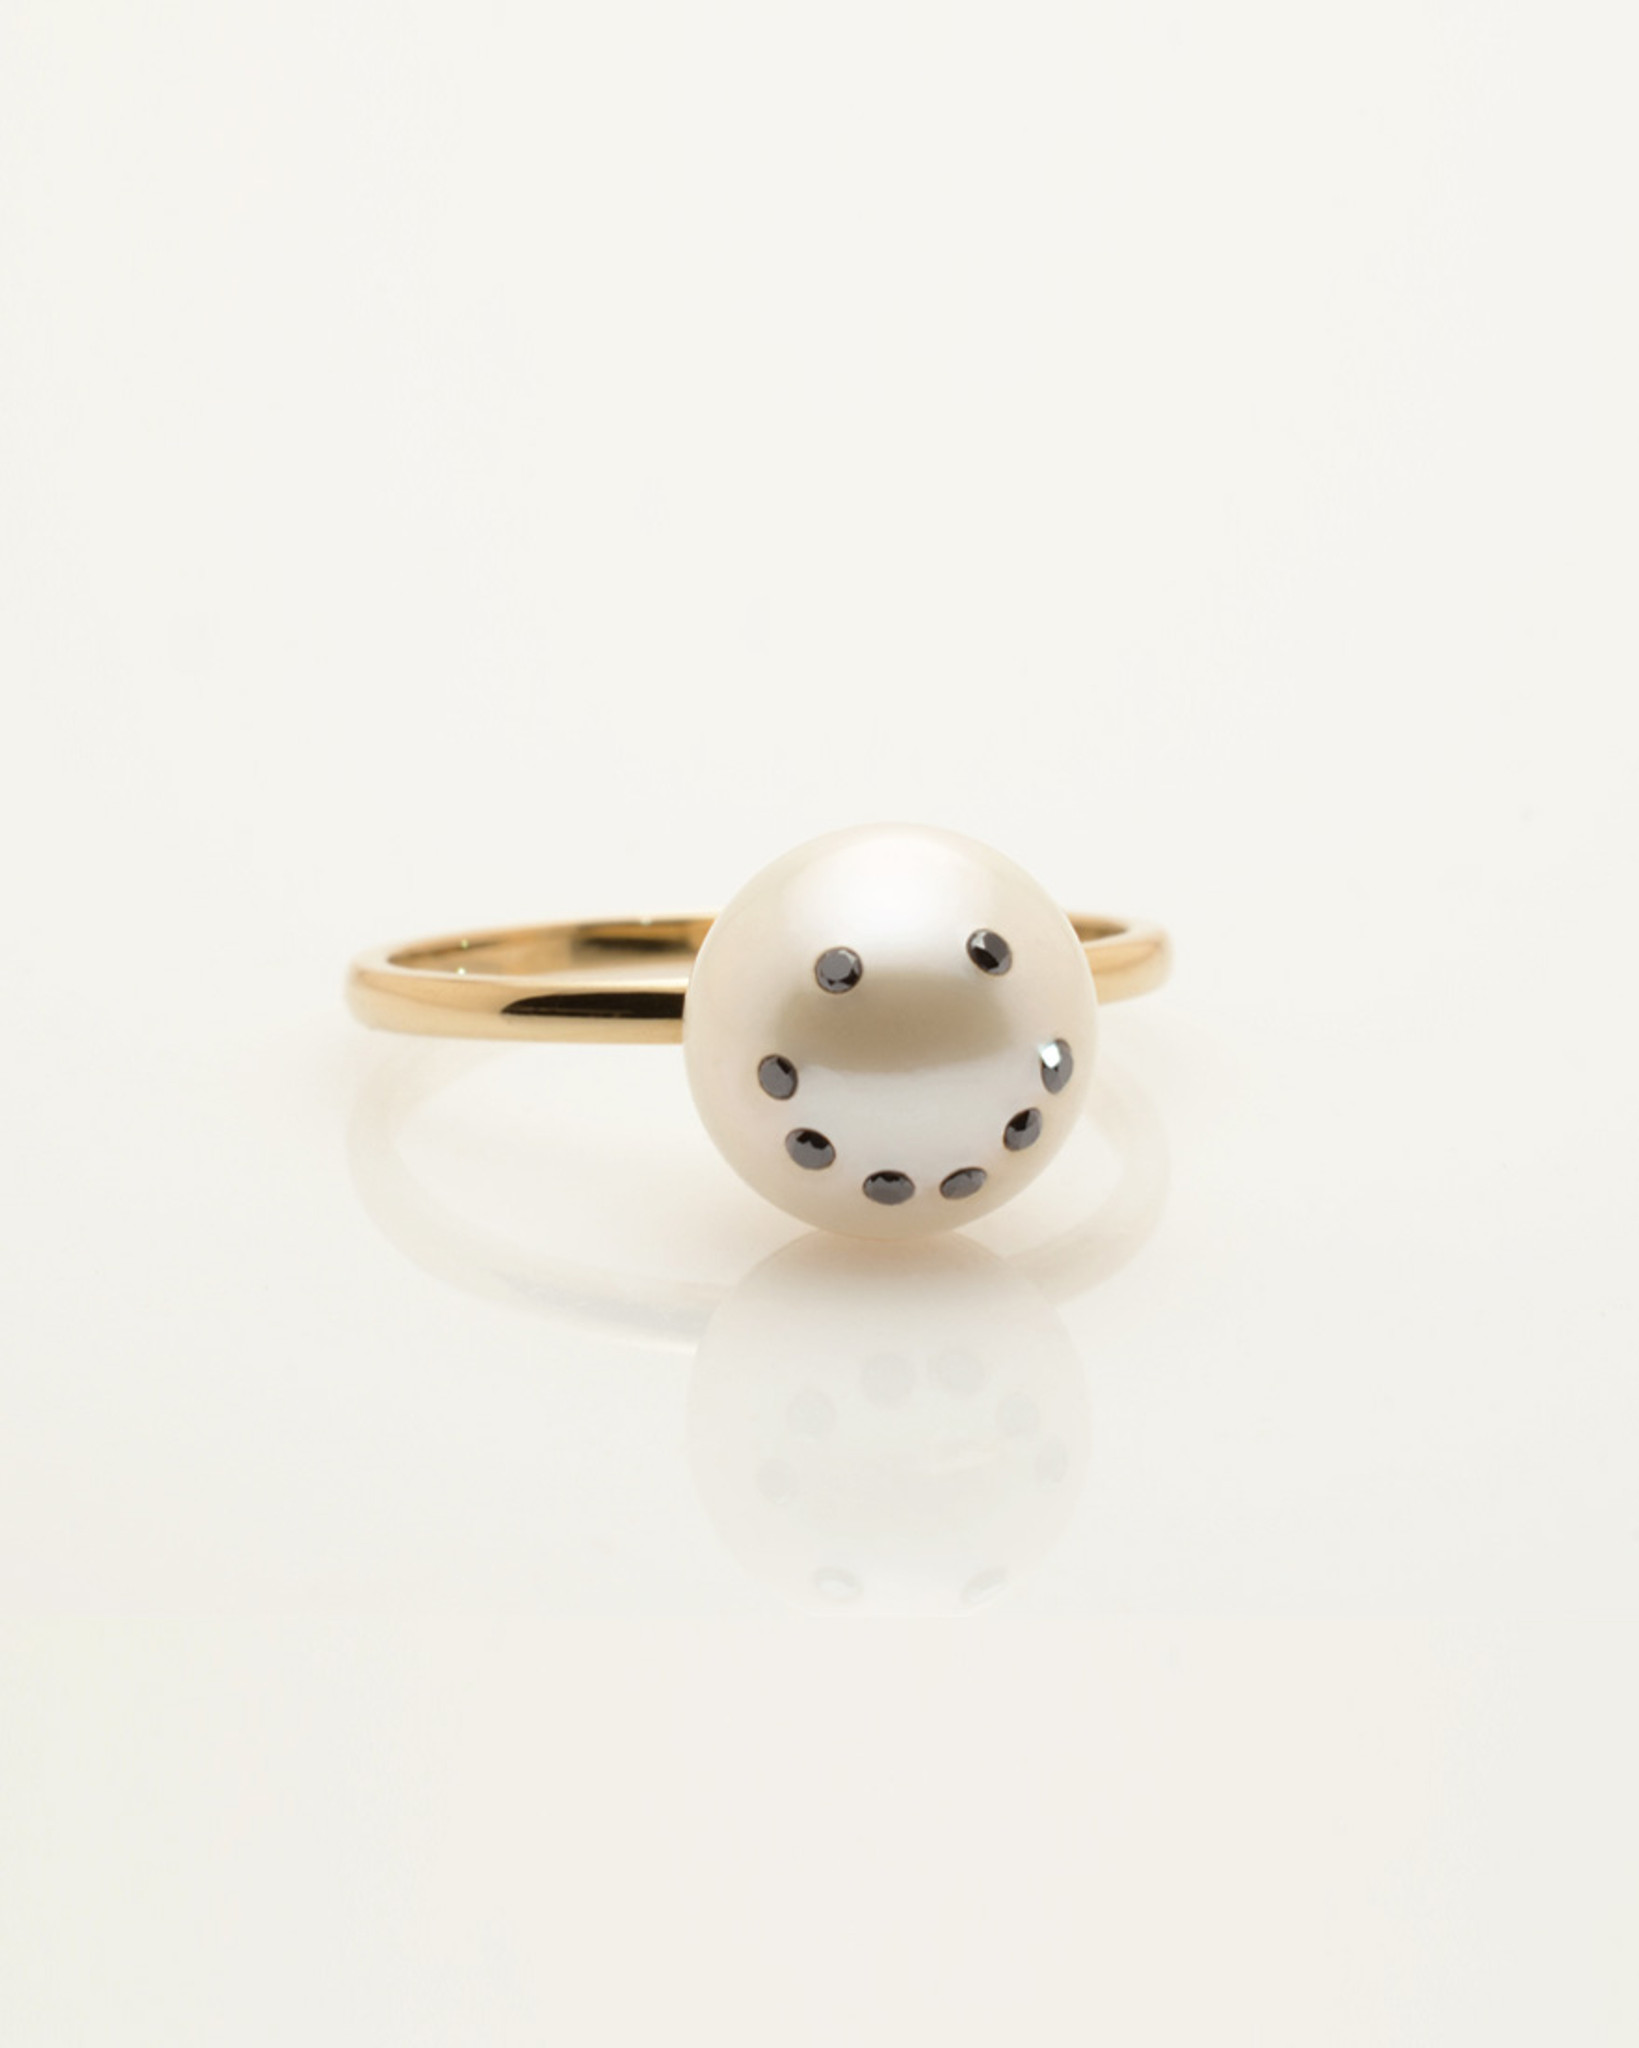 Front view of Cultured Freshwater Pearl Ring with Smiley Emoji Diamond Pavè & 14k Gold Band by Nektar De Stagni (8-9 mm. Size 5-6-7).